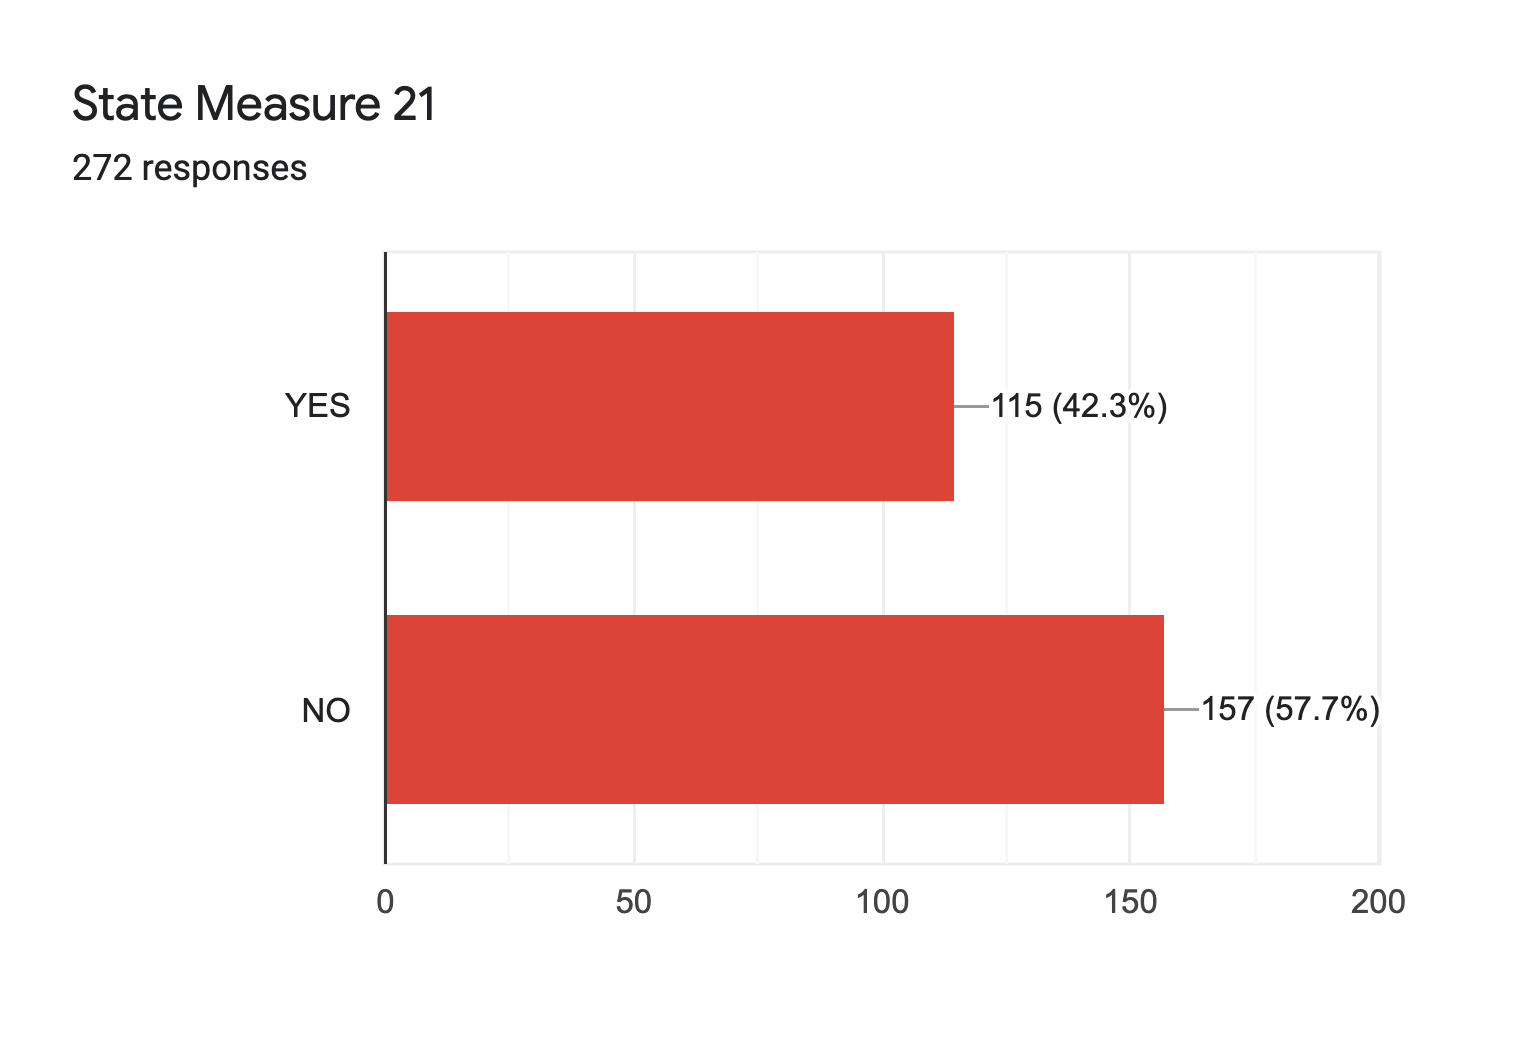 Forms response chart. Question title: State Measure 21. Number of responses: 272 responses.